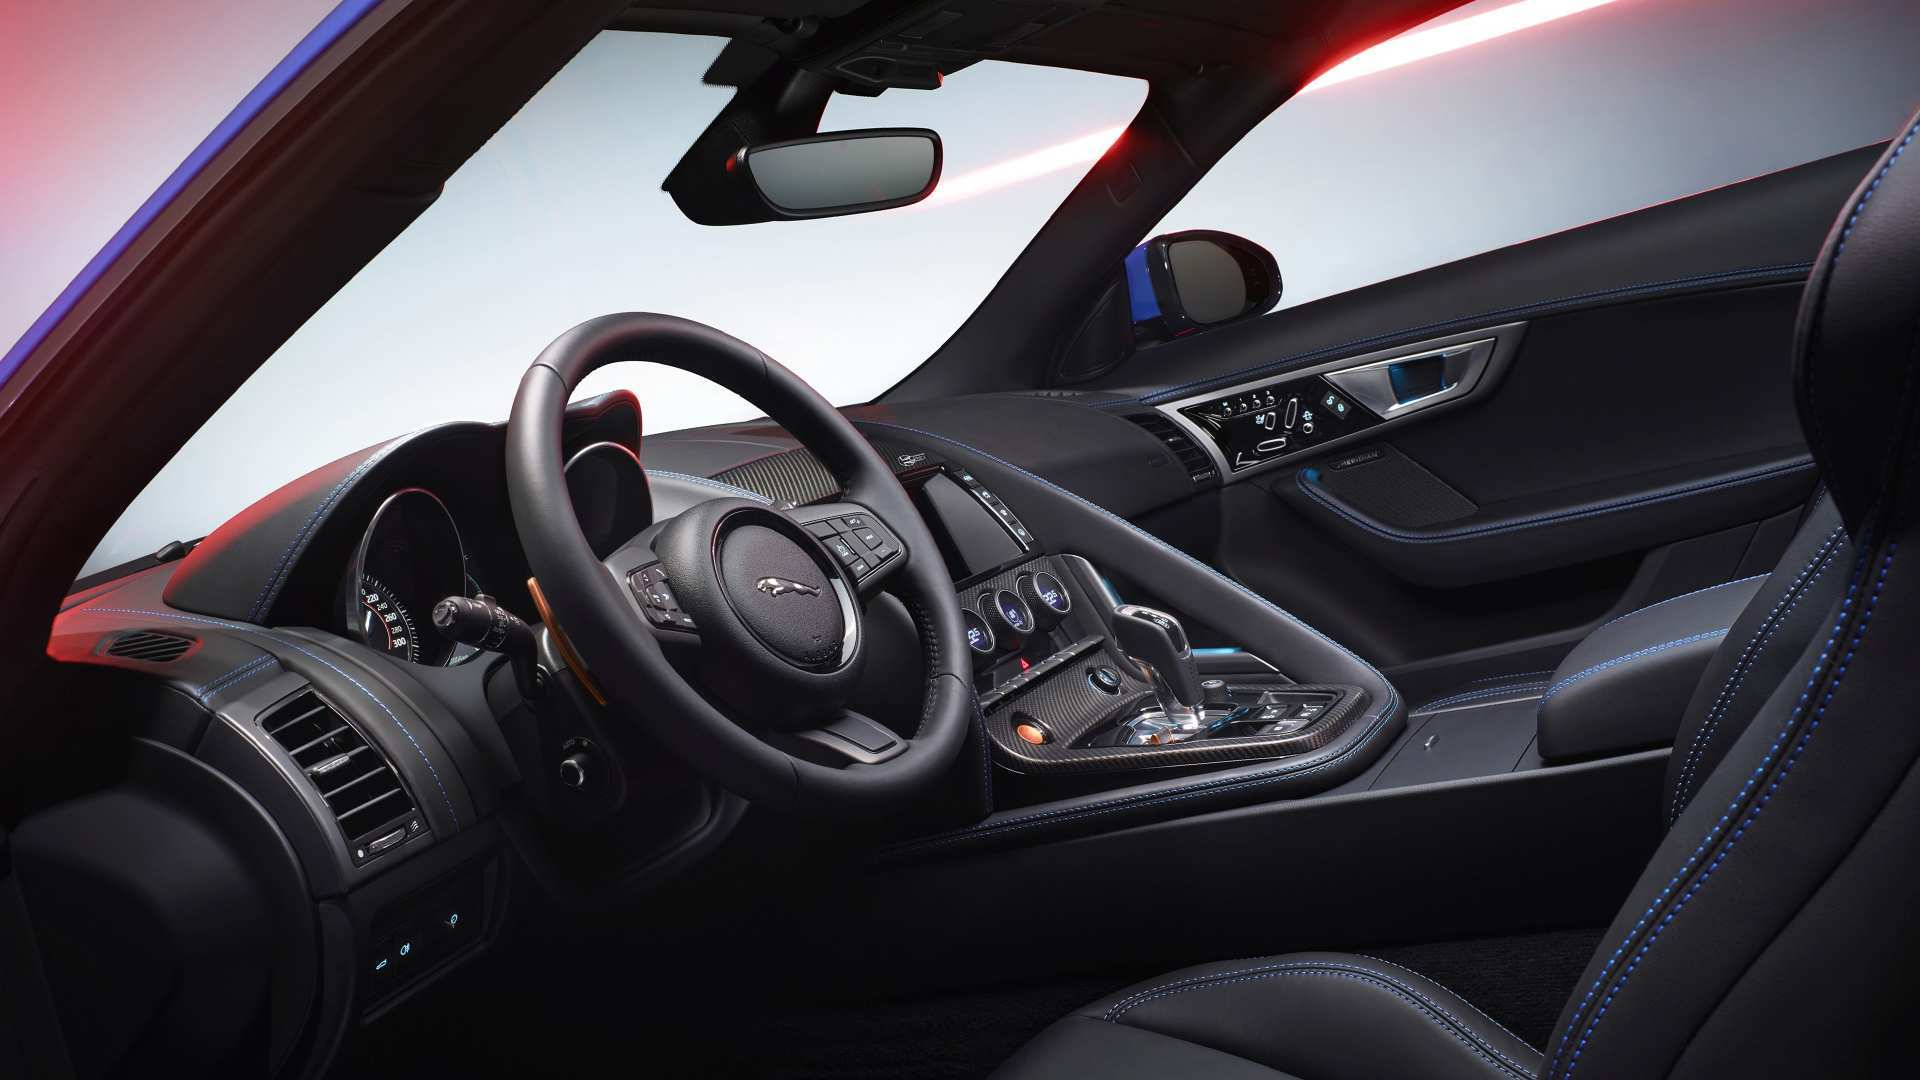 55 Best 2019 Jaguar F Type Interior Price And Review